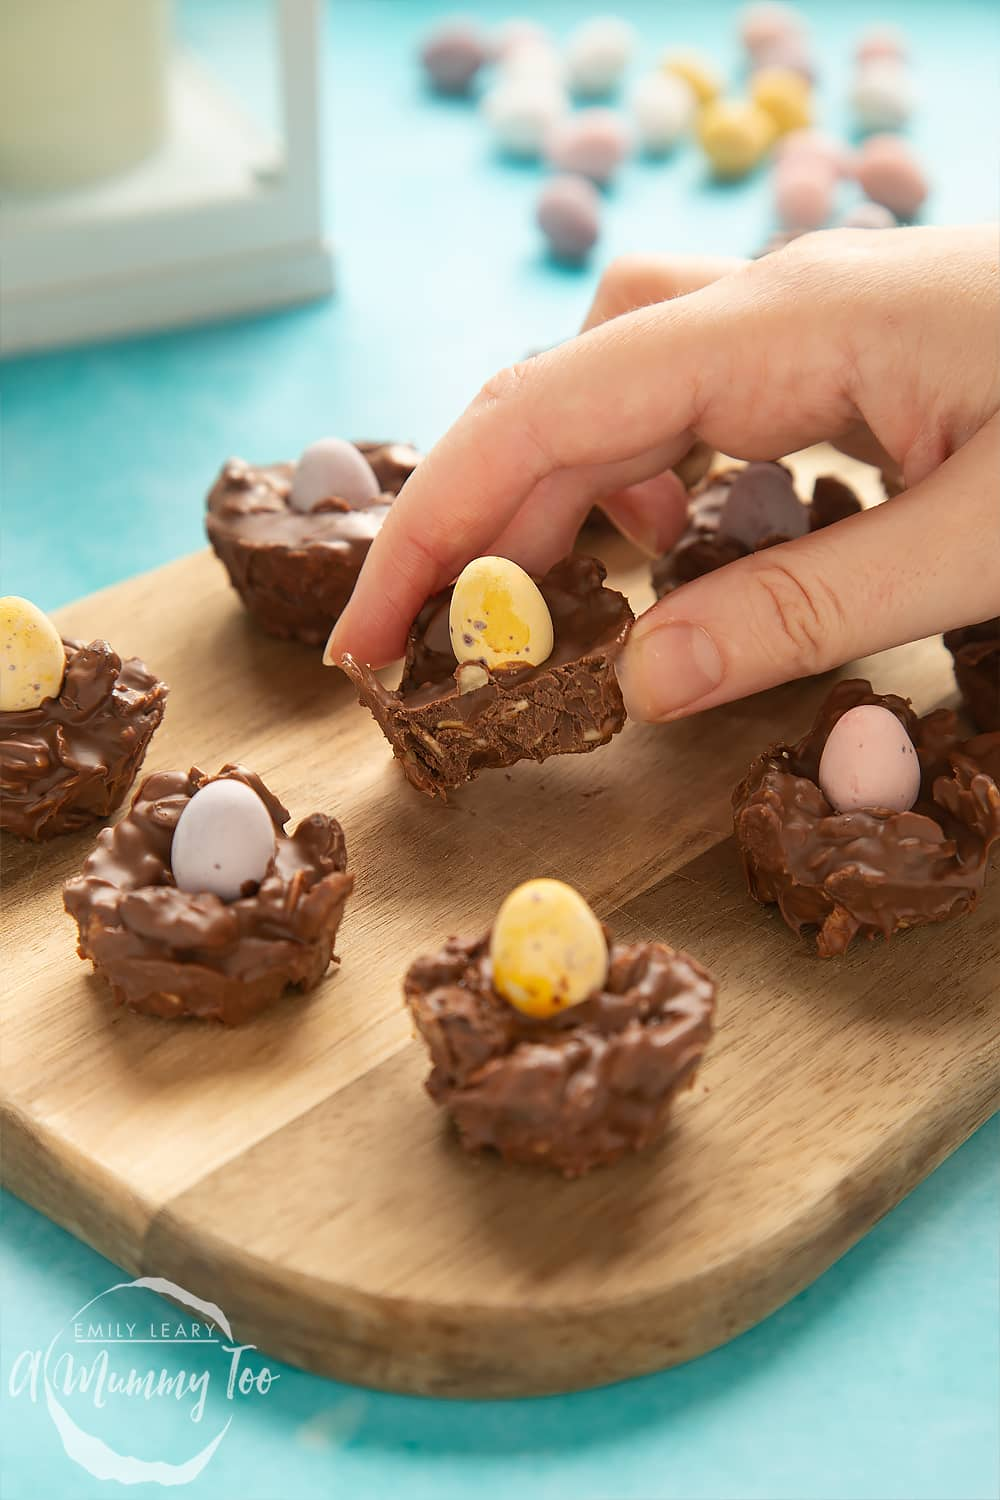 Side on shot of a hand holding a chocolate Easter nest cakes with an Easter egg